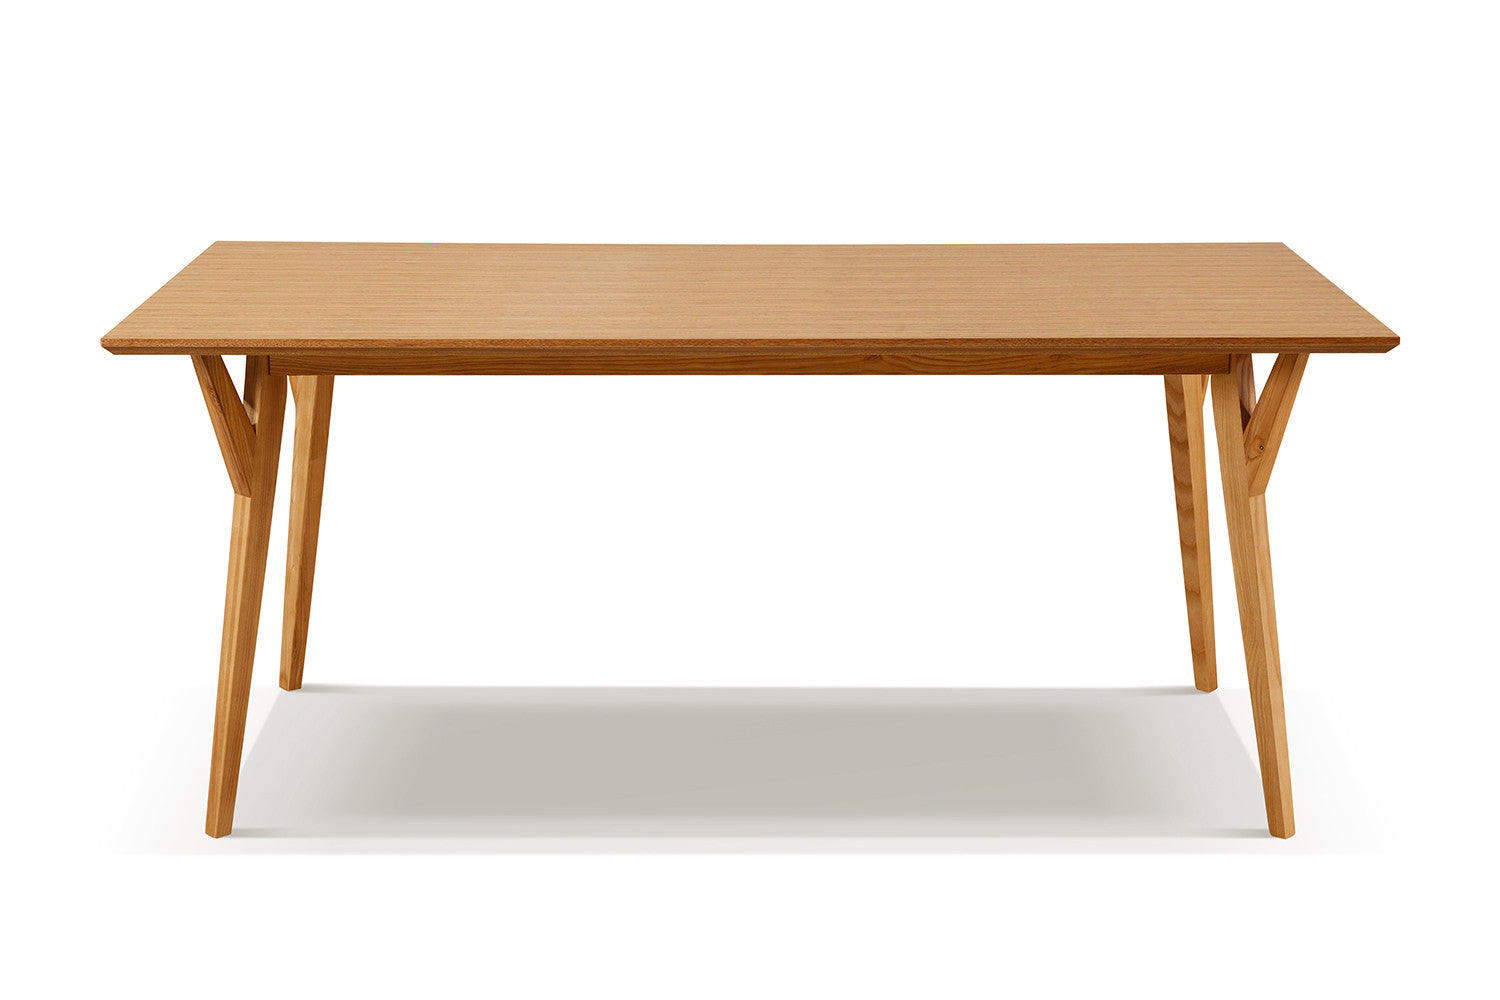 Table salle a manger scandinave for Table rallonge scandinave